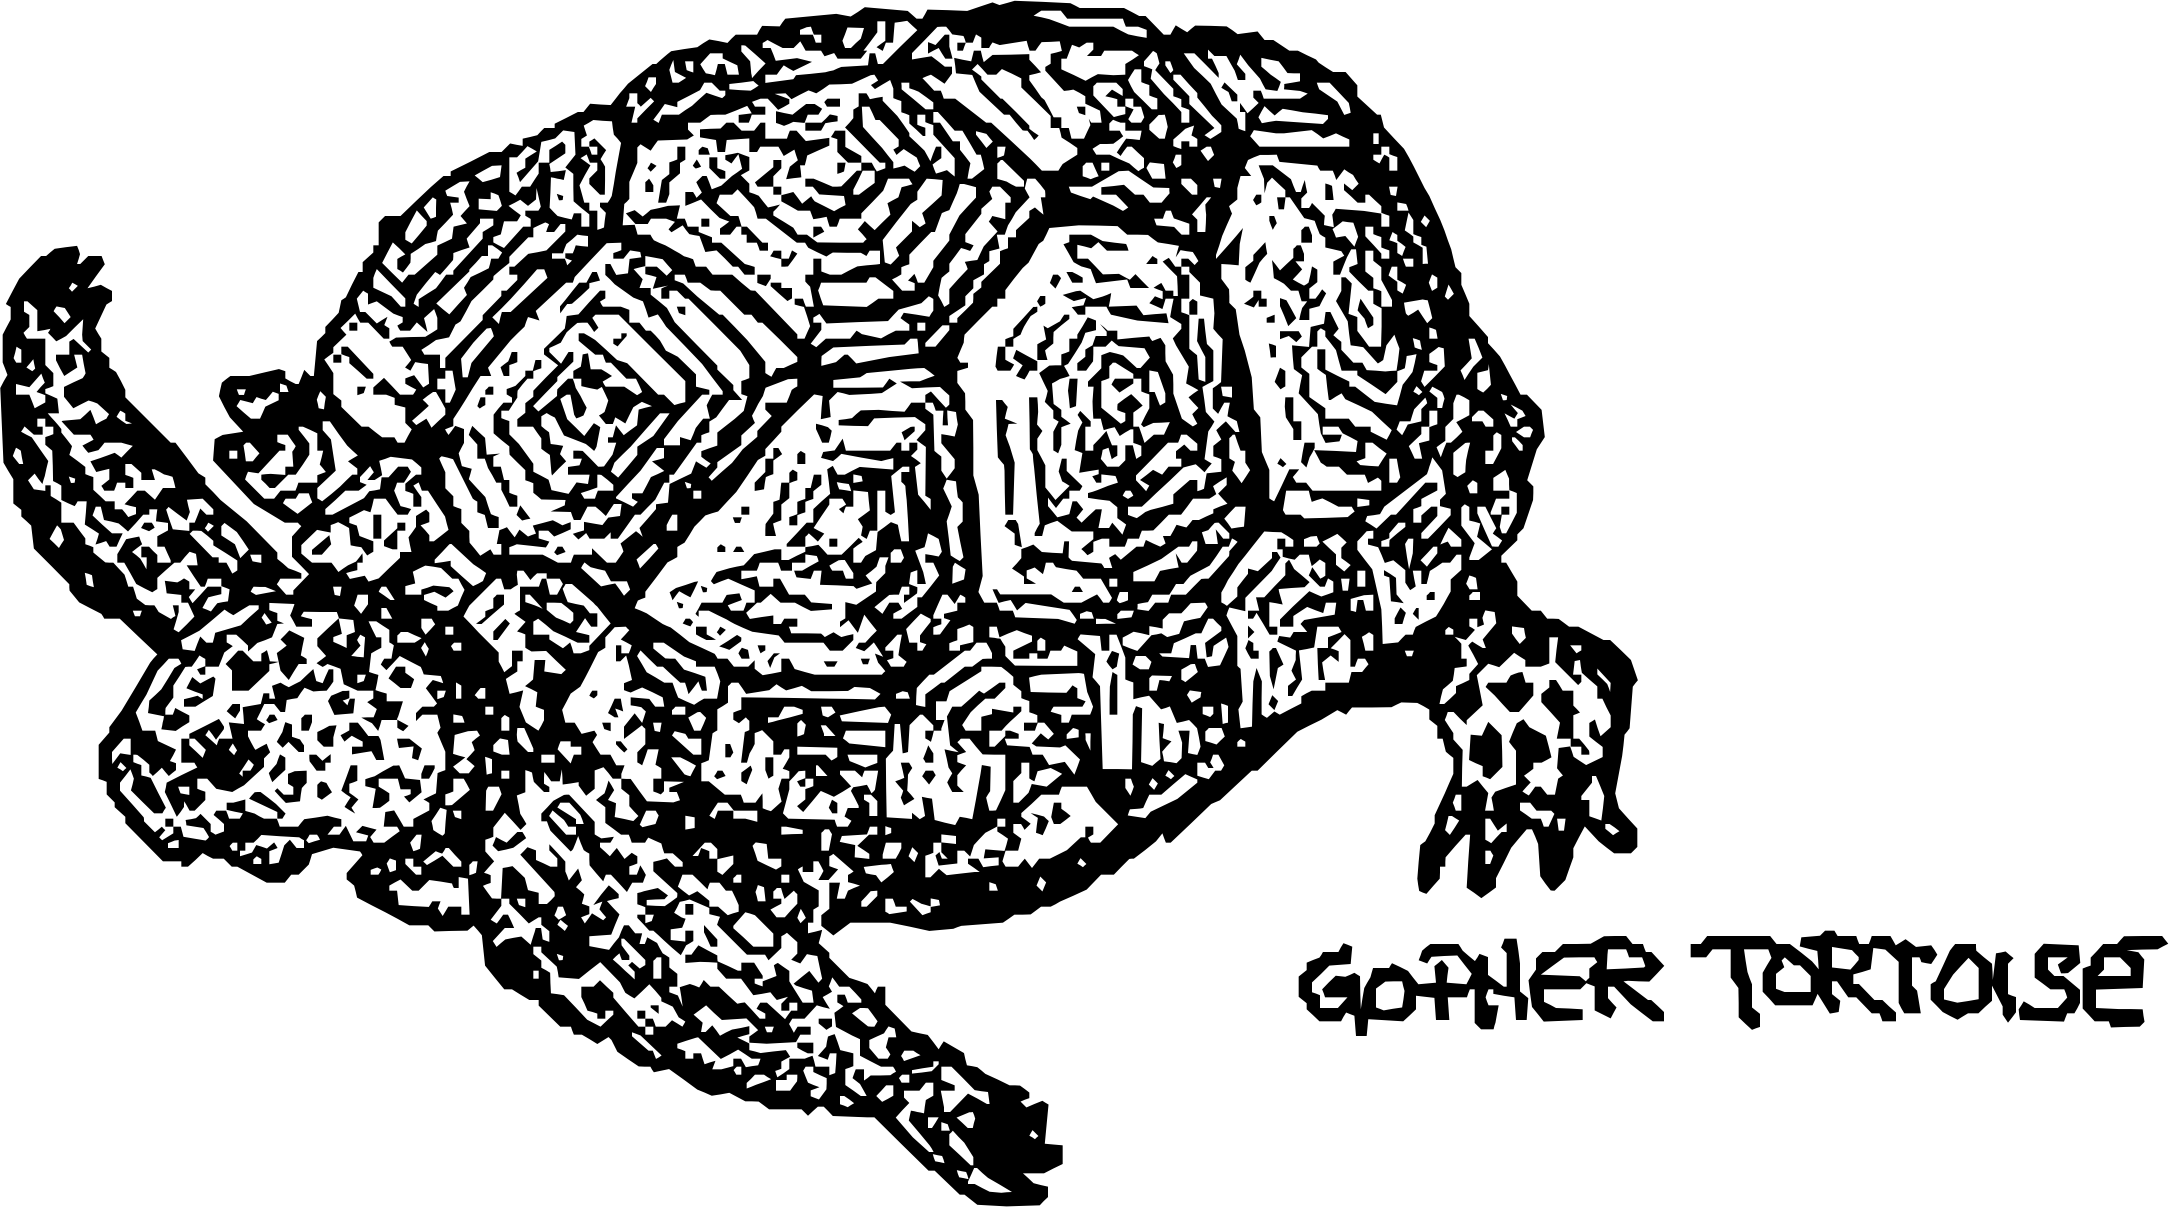 Clipart Turtle Gopher Tortoise Clipart Turtle Gopher